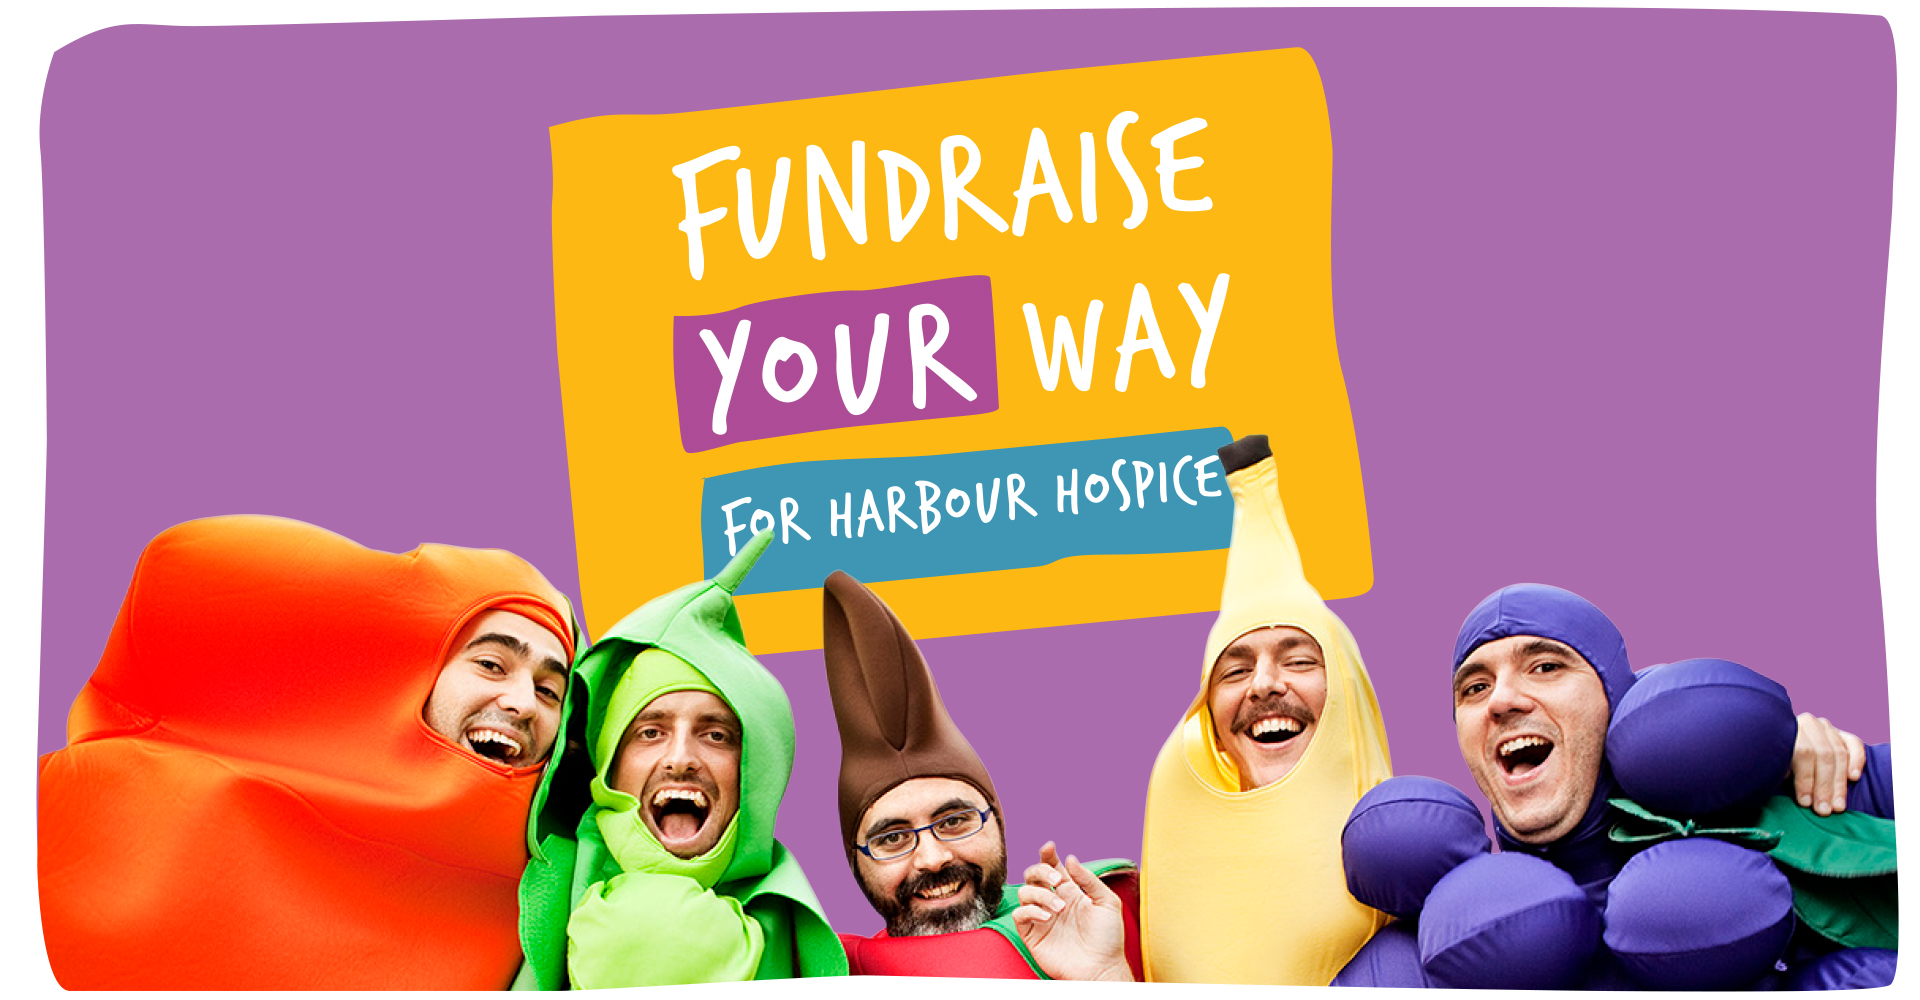 Fundraise your way banner